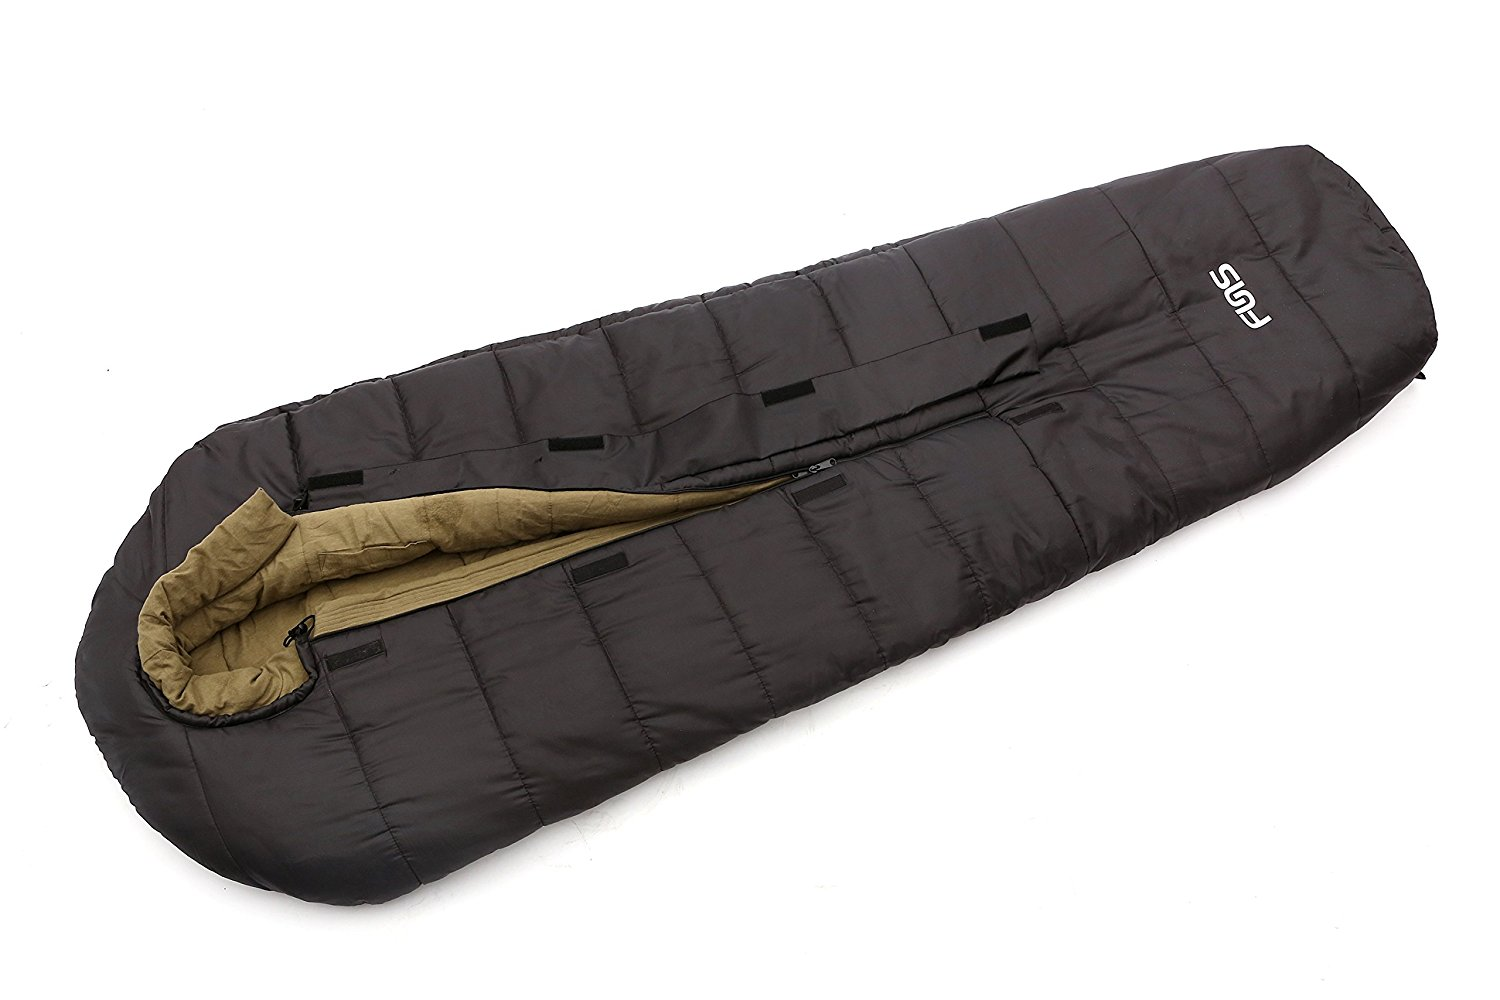 Military Cold Weather Sleeping Bags Find